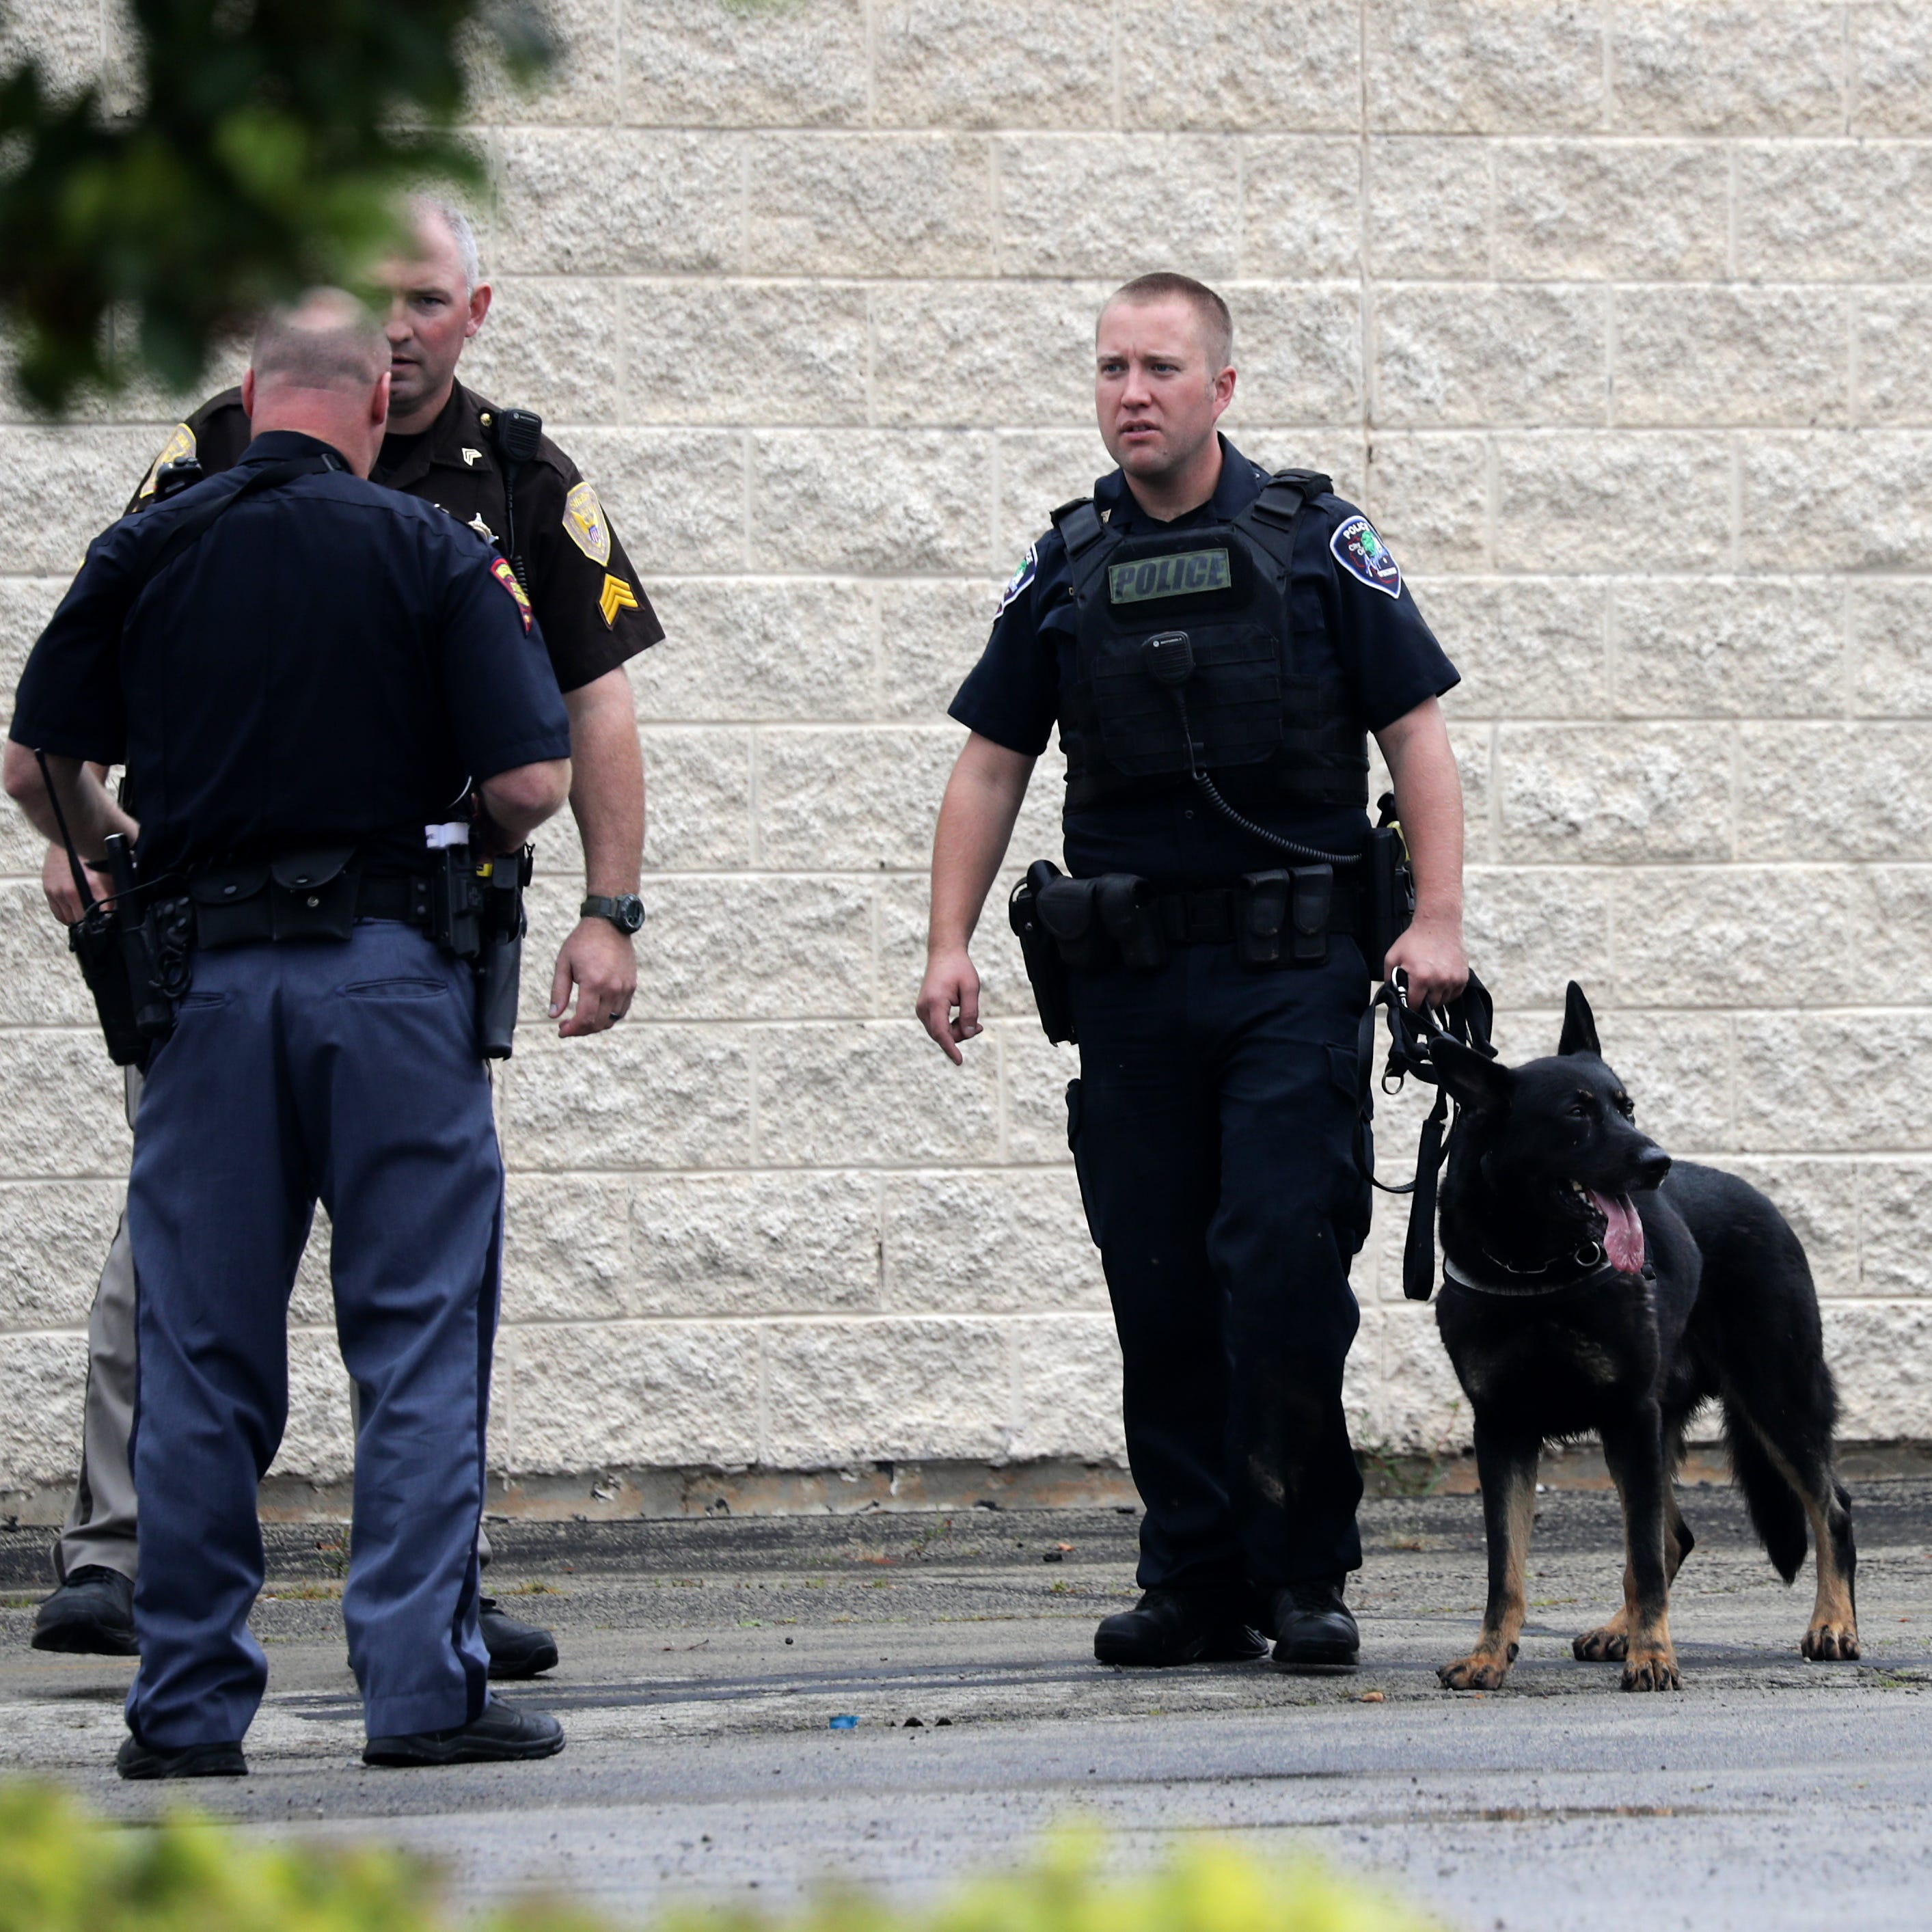 Polioce on the scene of a search that forced two schools to lock down near Calumet St. on Thursday, September 20, 2018, in Appleton, Wis.  Wm. Glasheen/USA TODAY NETWORK-Wisconsin.